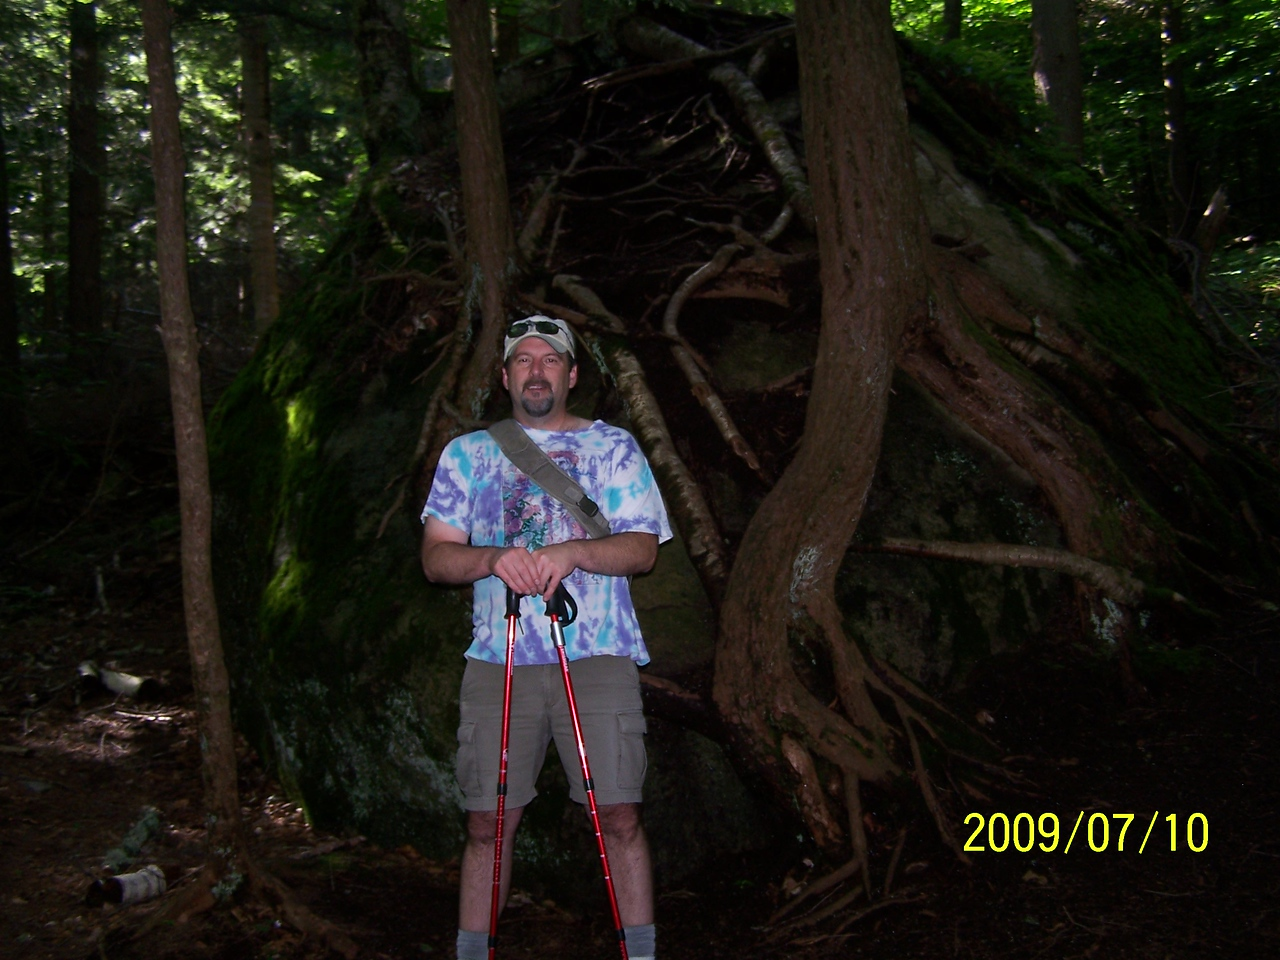 Found this big tree growing on a rock. Pretty cool. Notice my all cotton attire. I'm really taking this hiking serious.